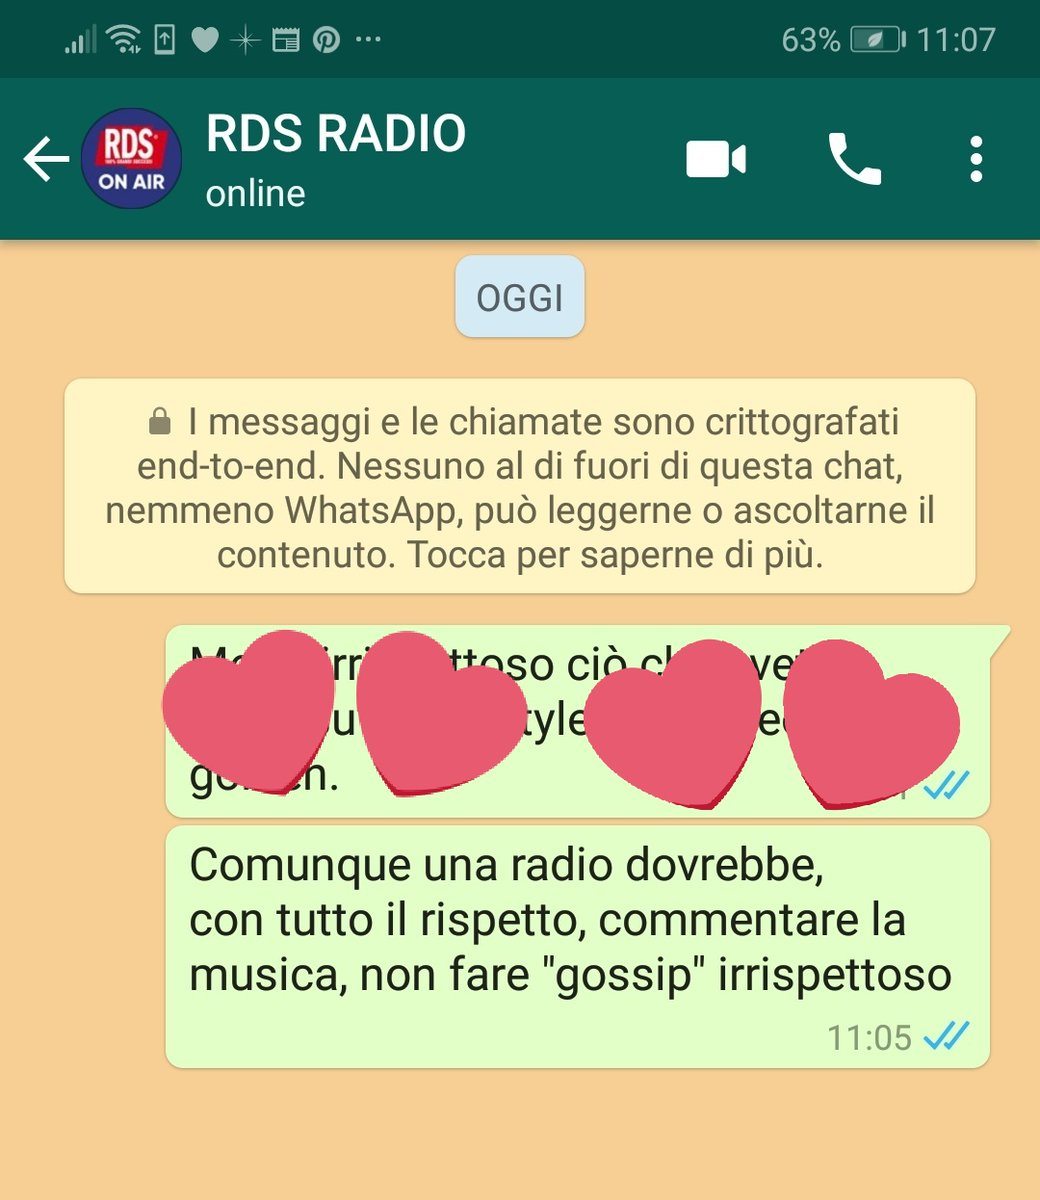 #rdsisoverparty